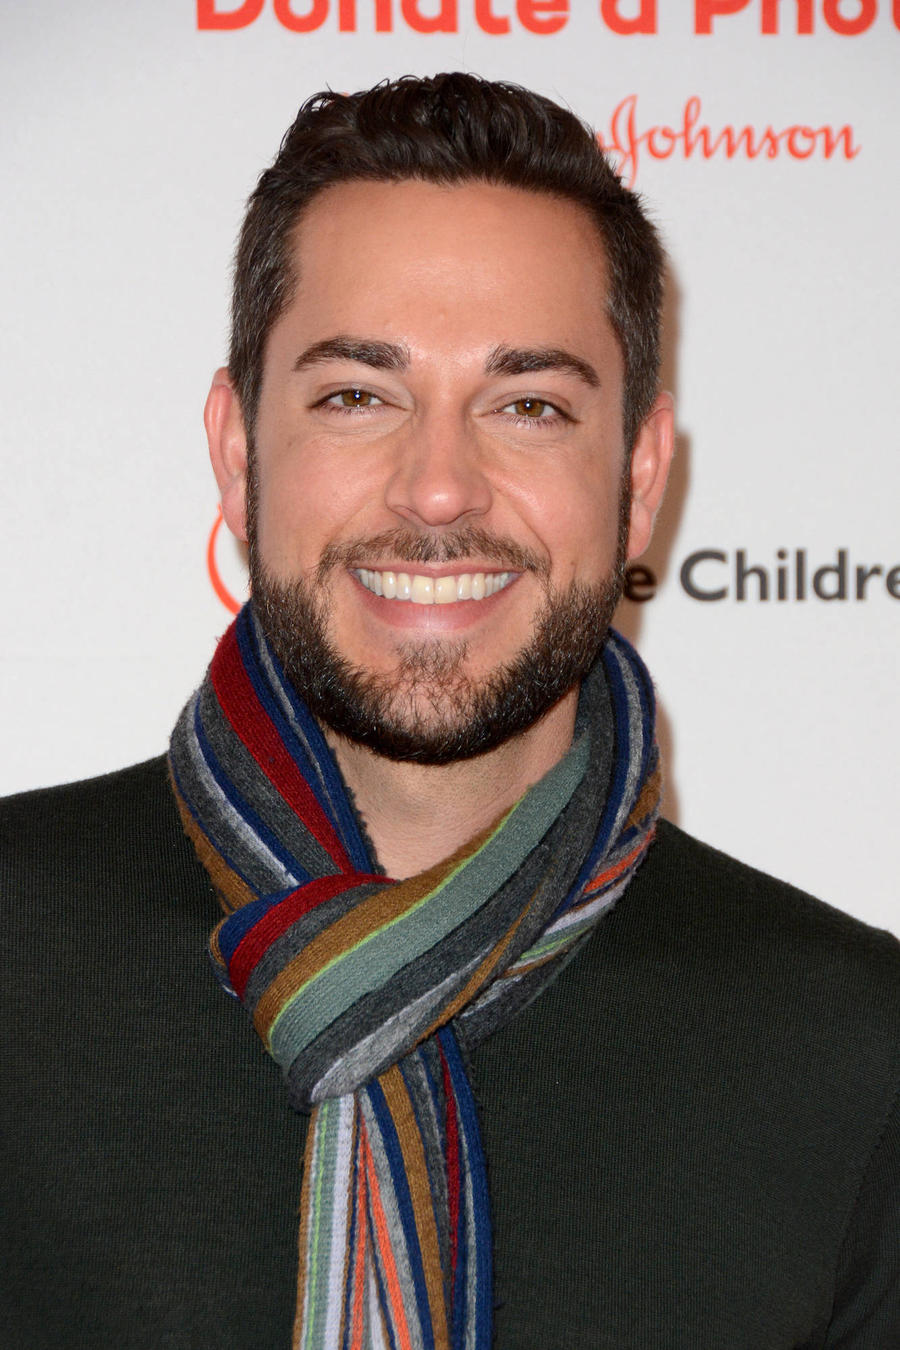 Zachary Levi Branded 'Too Jewish' For Films